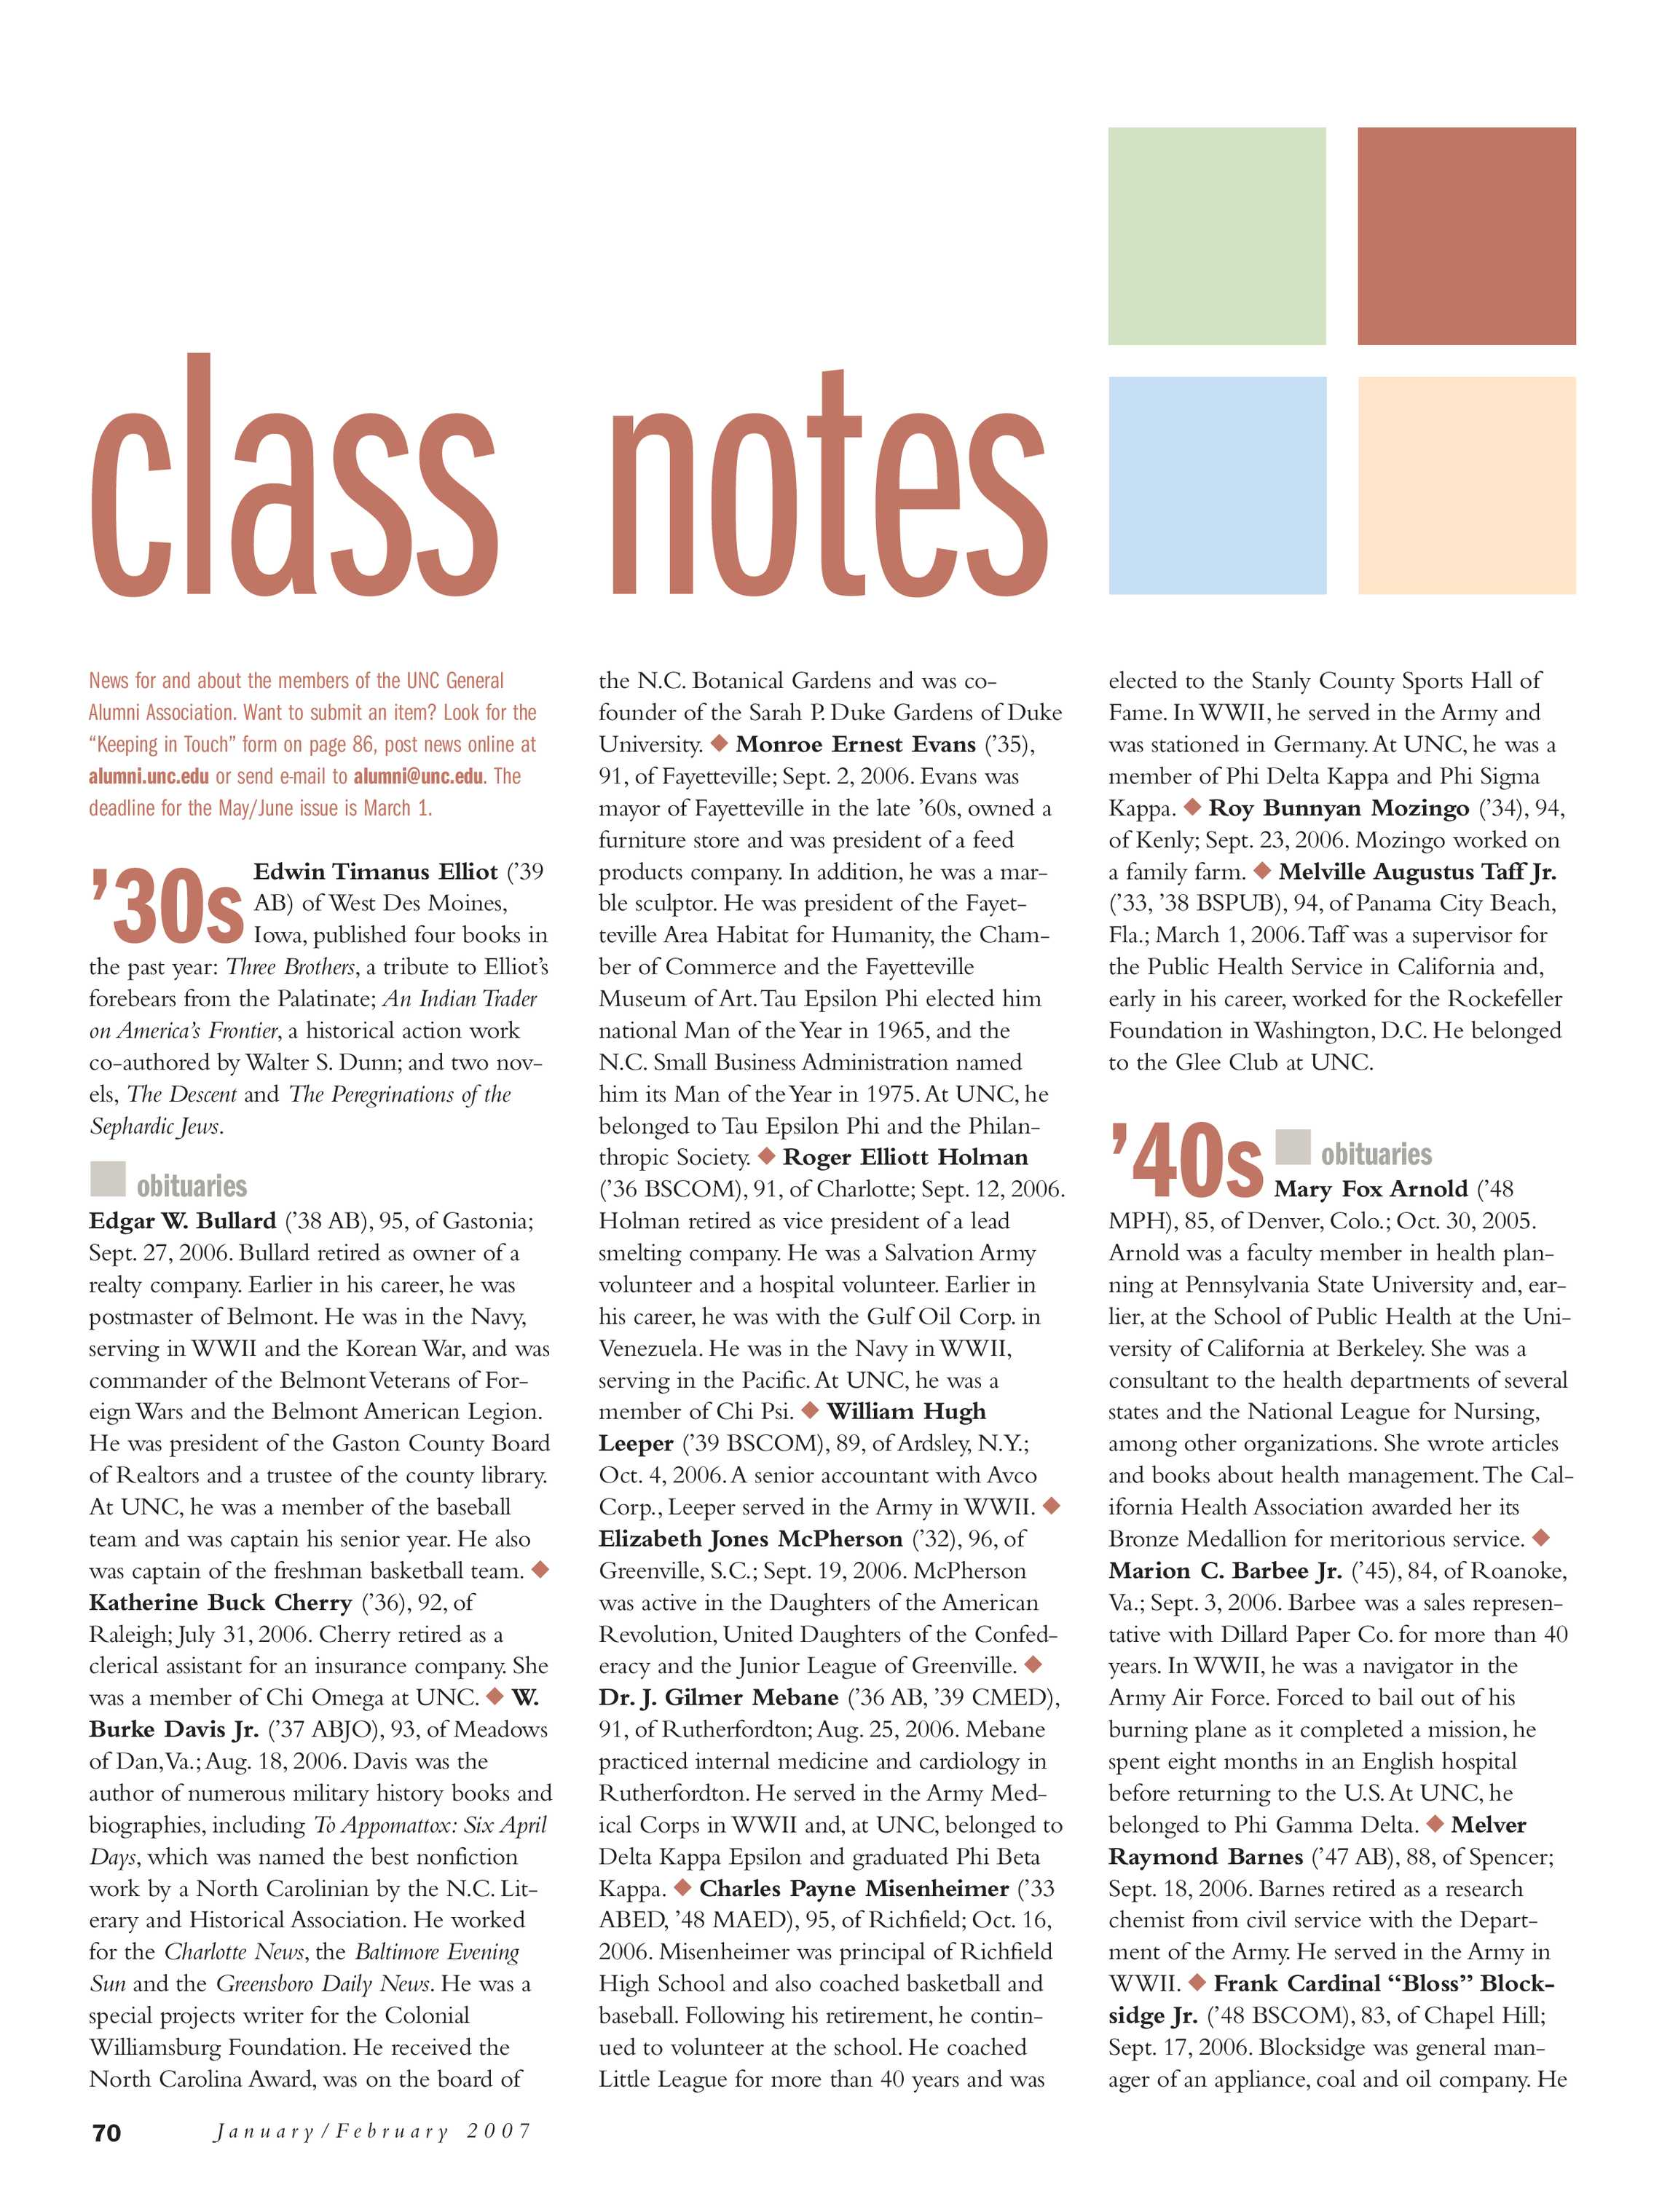 Carolina Alumni Review - January/February 2007 - page 70